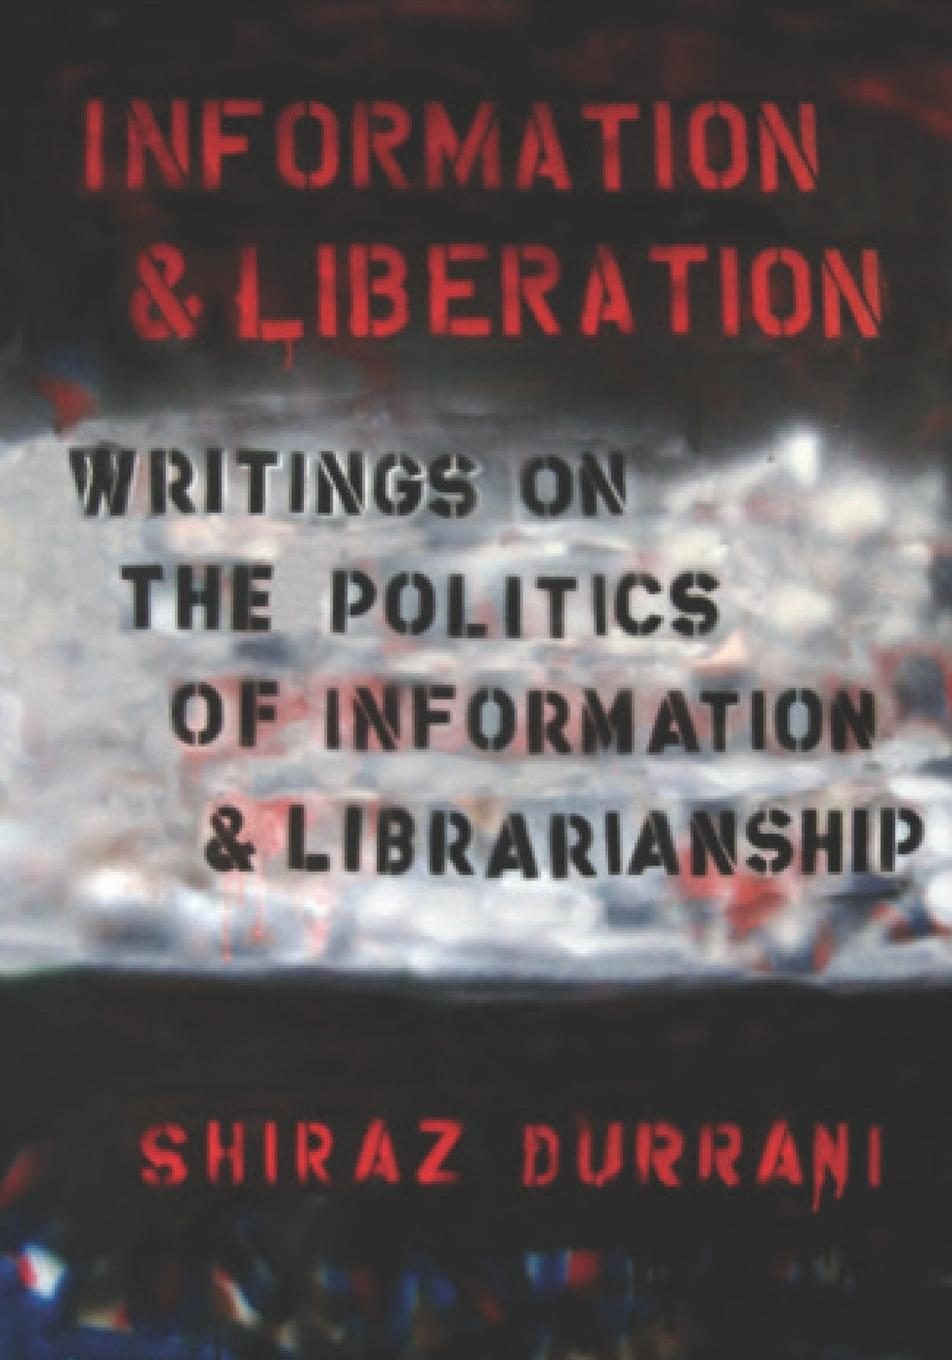 Shiraz Durrani Information and liberation. Writings on the Politics of Information and Librarianship patrick allo putting information first luciano floridi and the philosophy of information